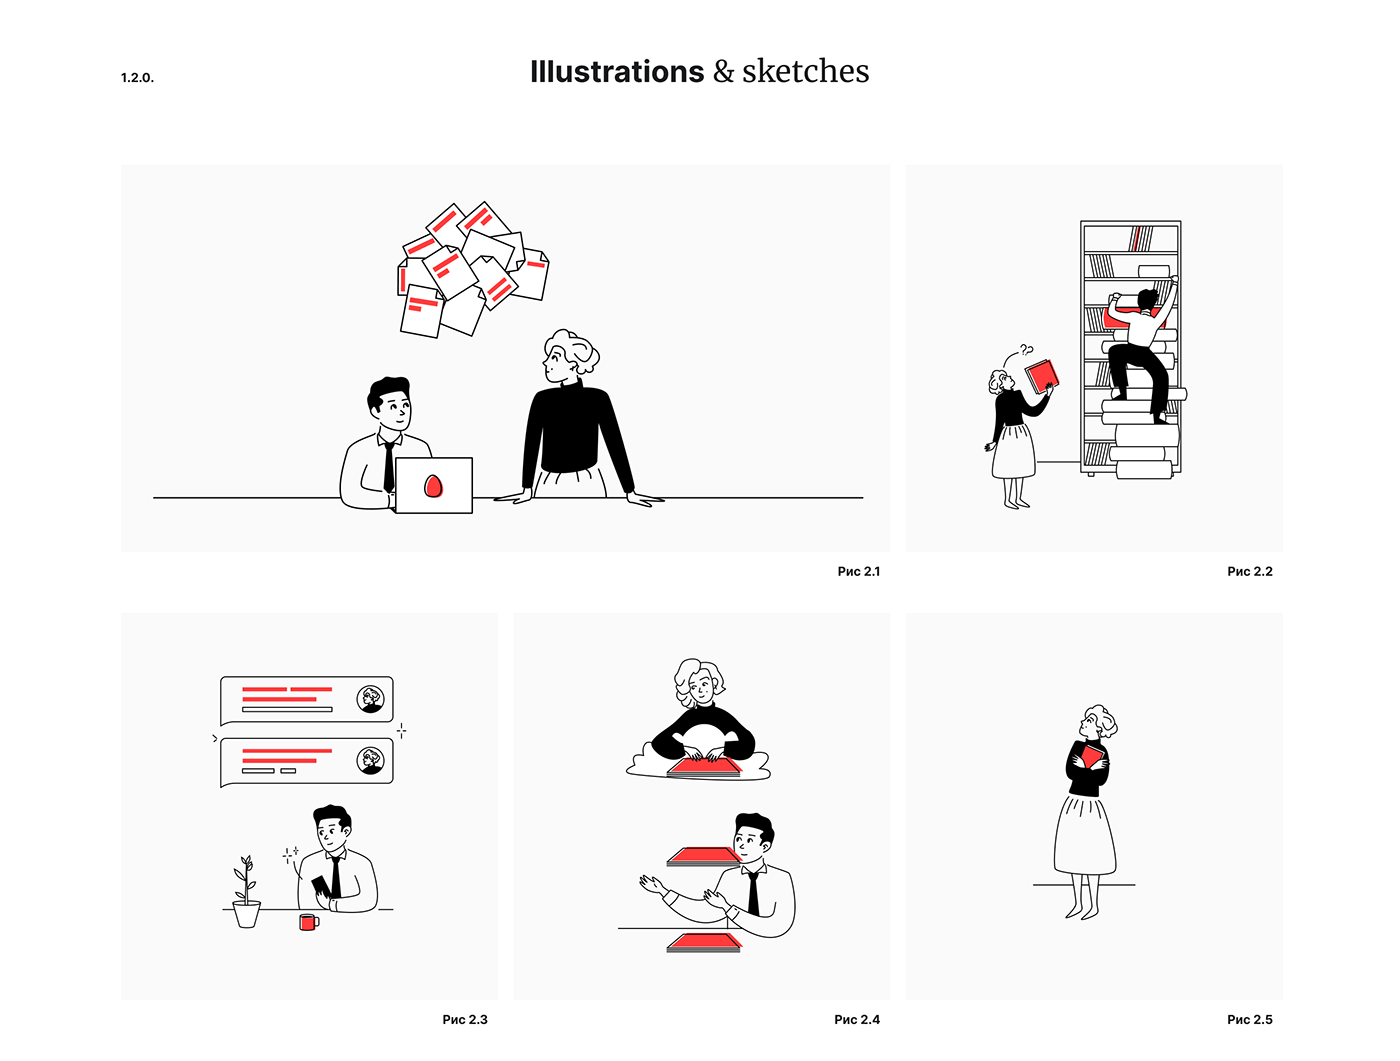 embacy Startup product clean minimal legal tech IT ILLUSTRATION  illustrations